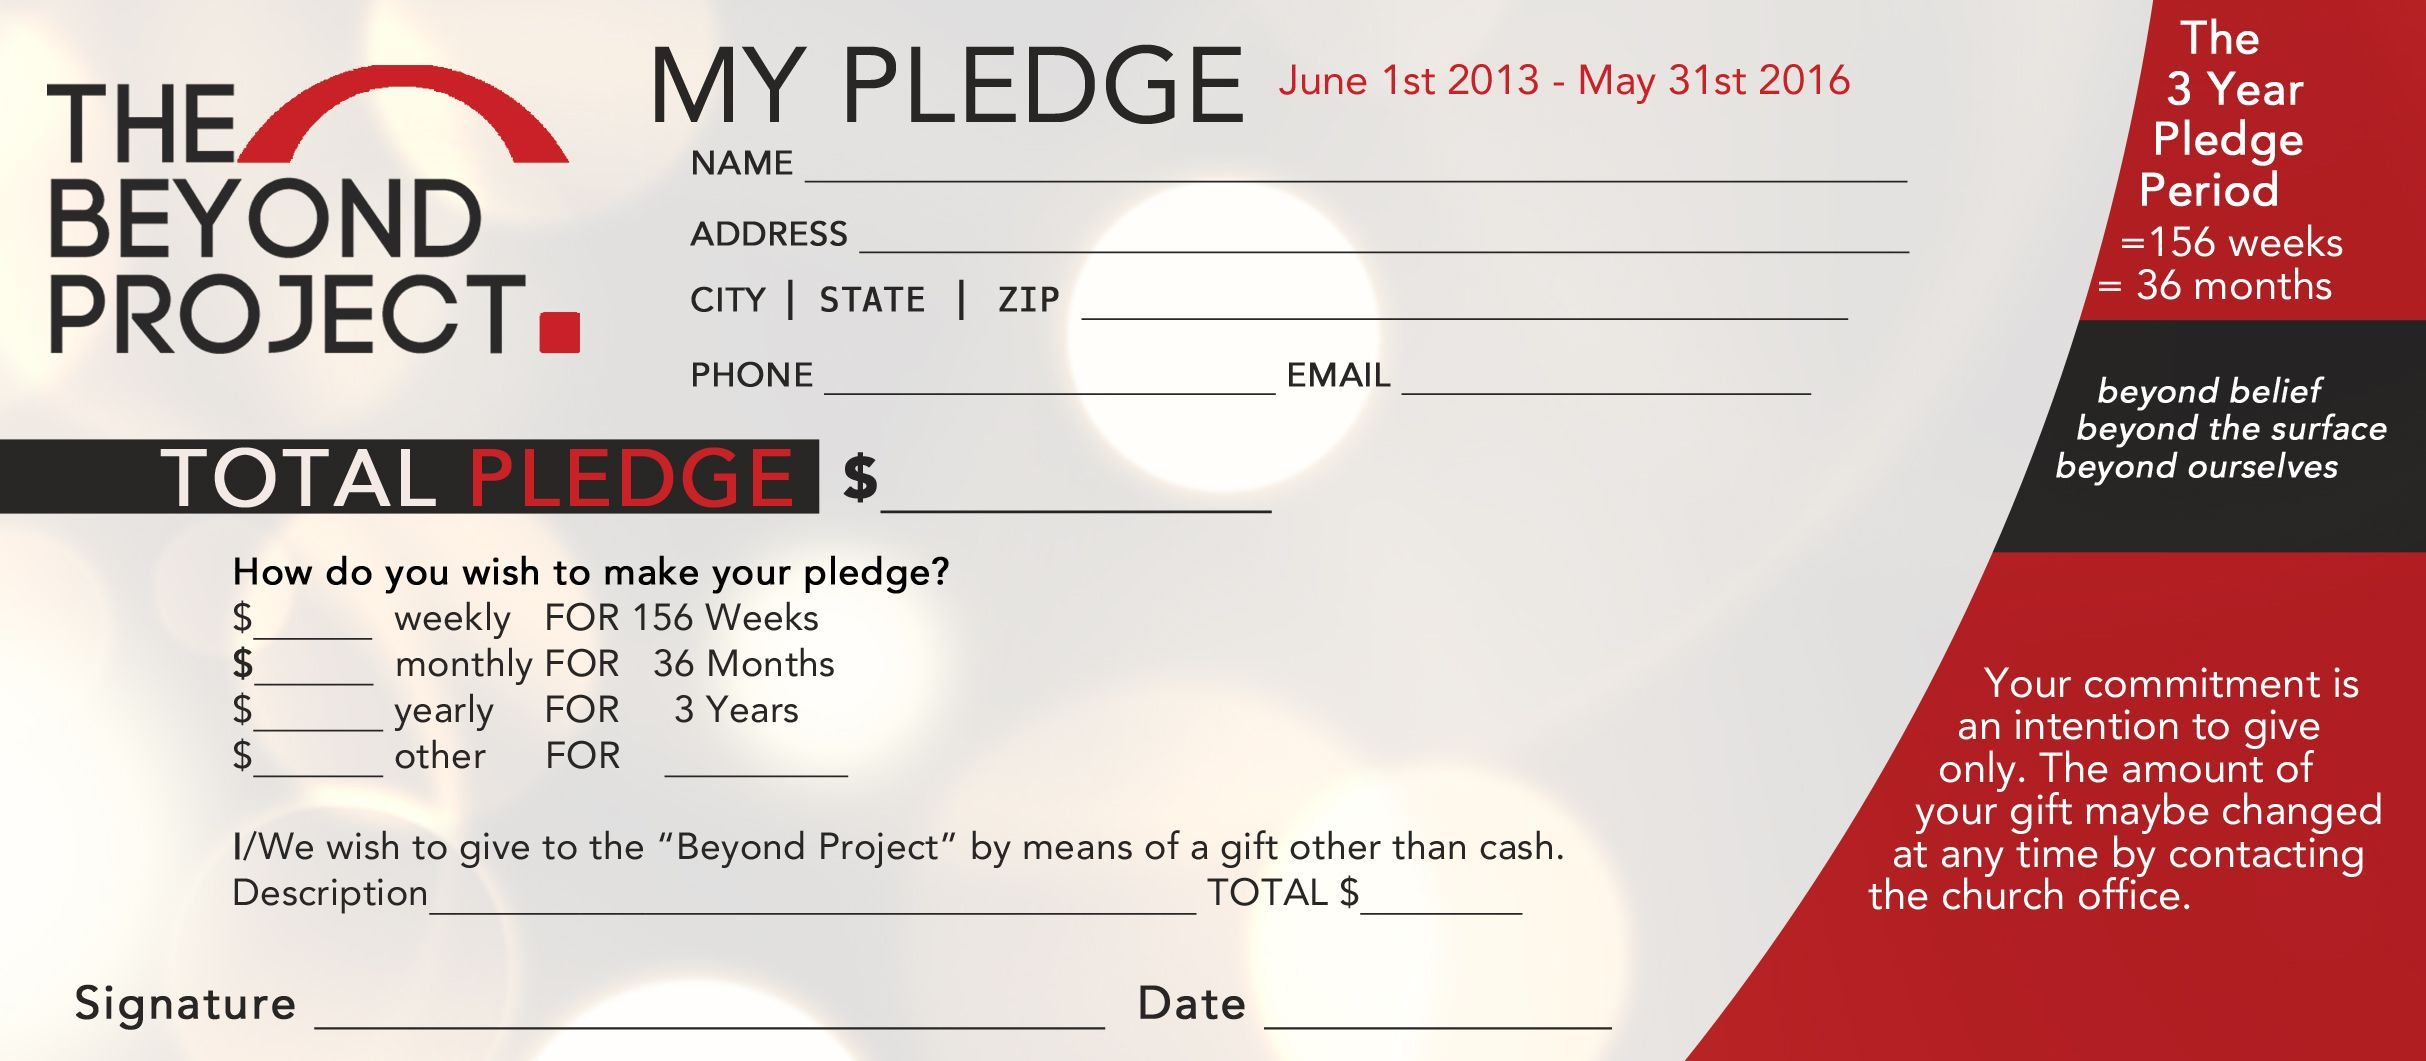 Church Pledge Form Template Hausn3uc Capital Campaign Within Fundraising Pledge Card Template Cumed Org Capital Campaign Card Template Pledge